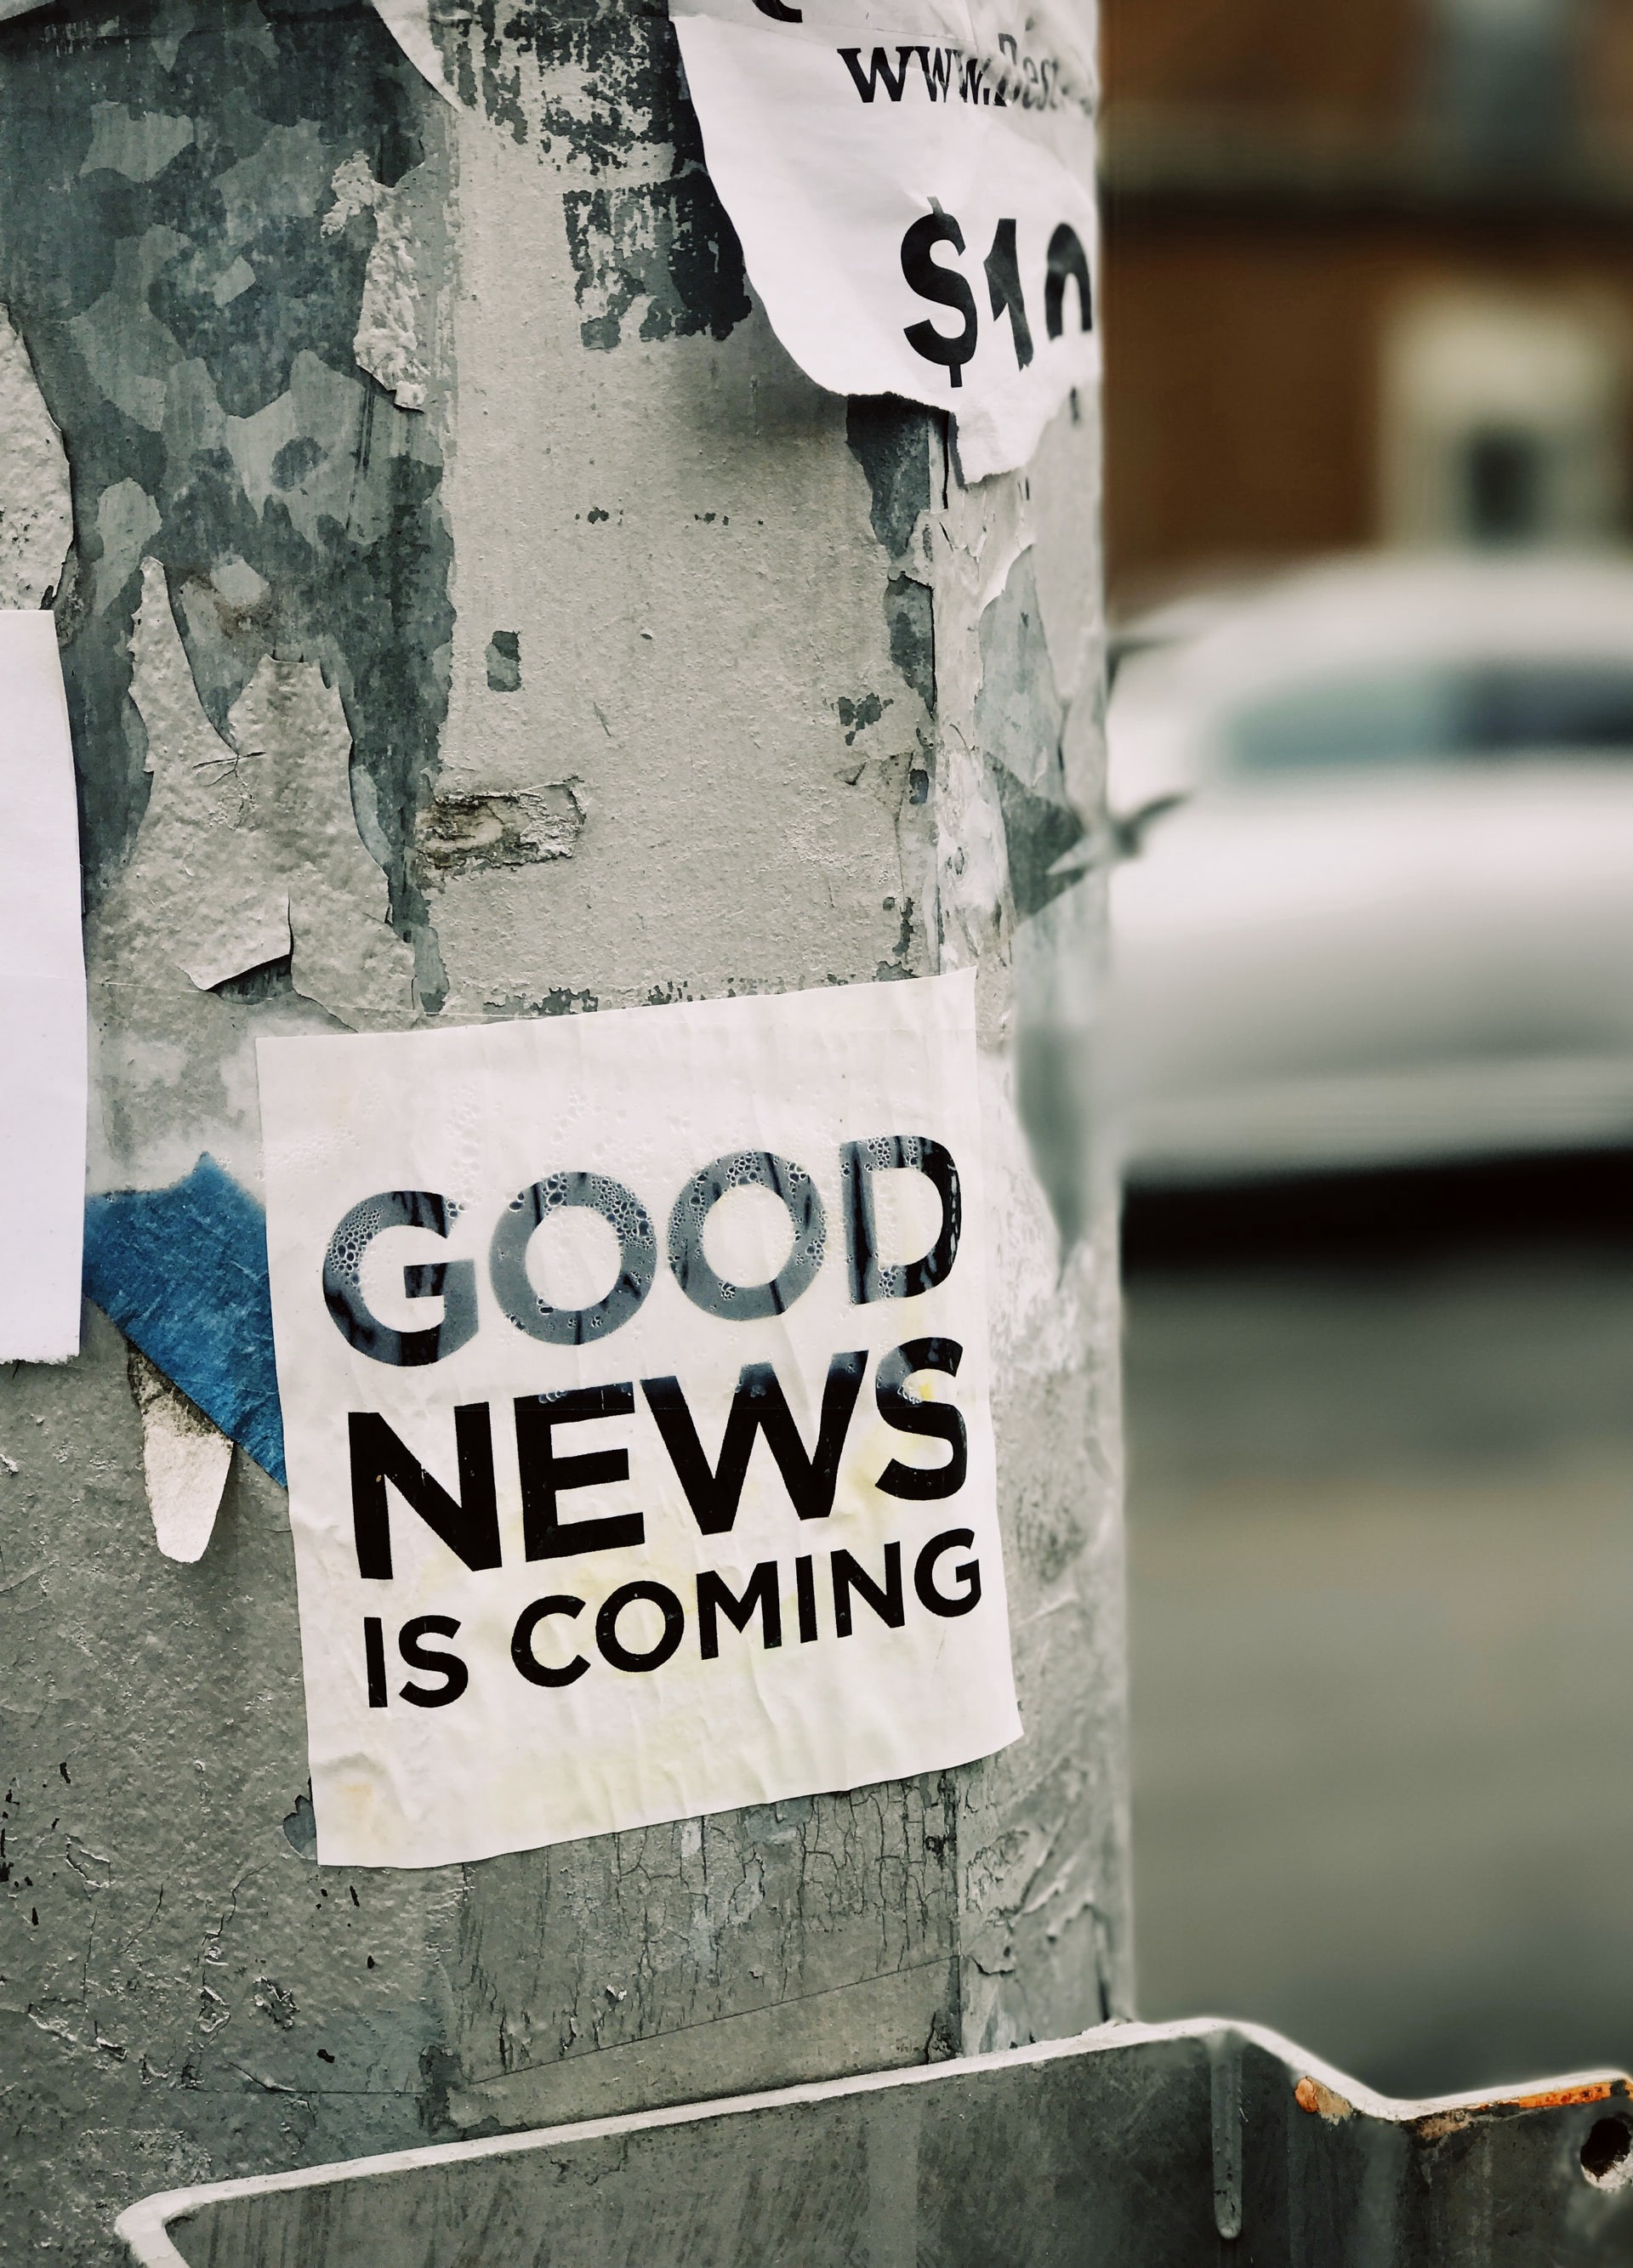 Good News to Share. Photo by Jon Tyson on Unsplash